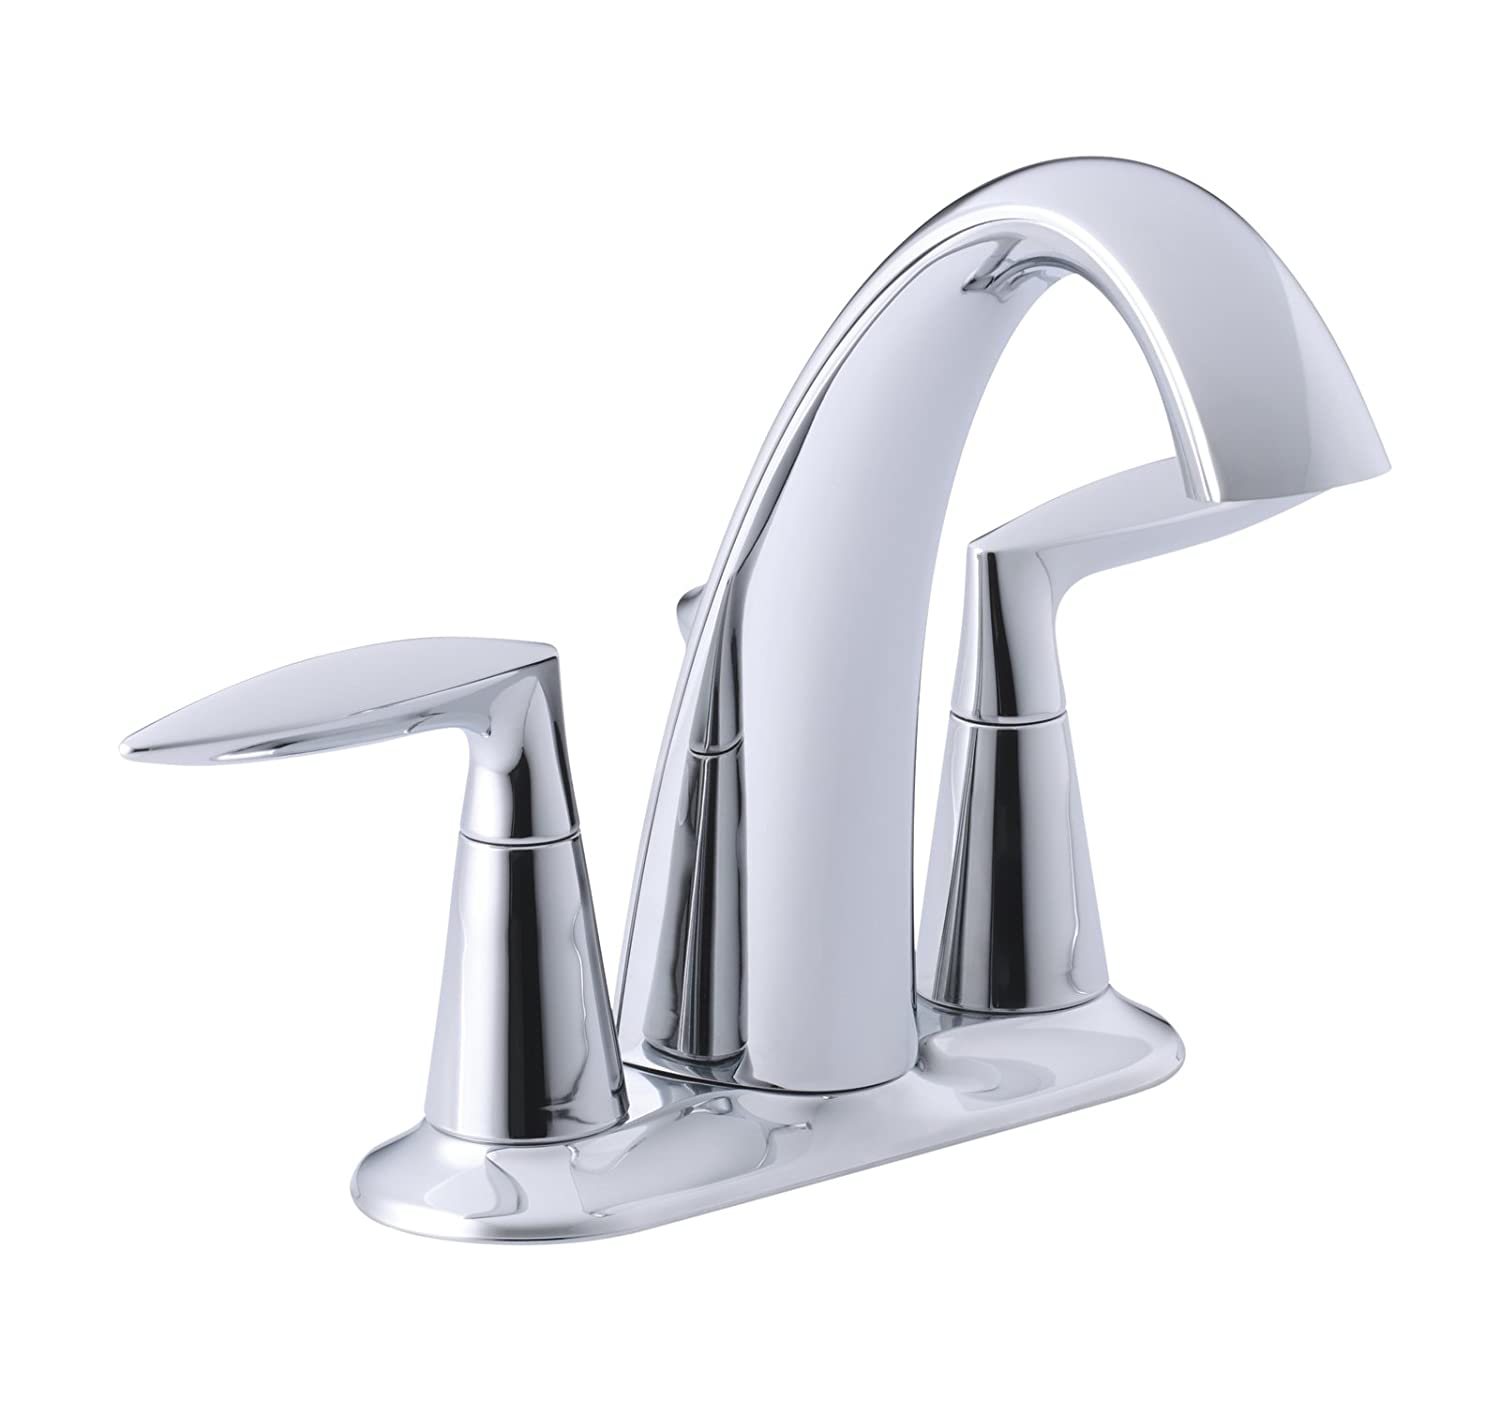 KOHLER K-45100-4-CP Alteo Centerset Lavatory Faucet, Polished Chrome ...